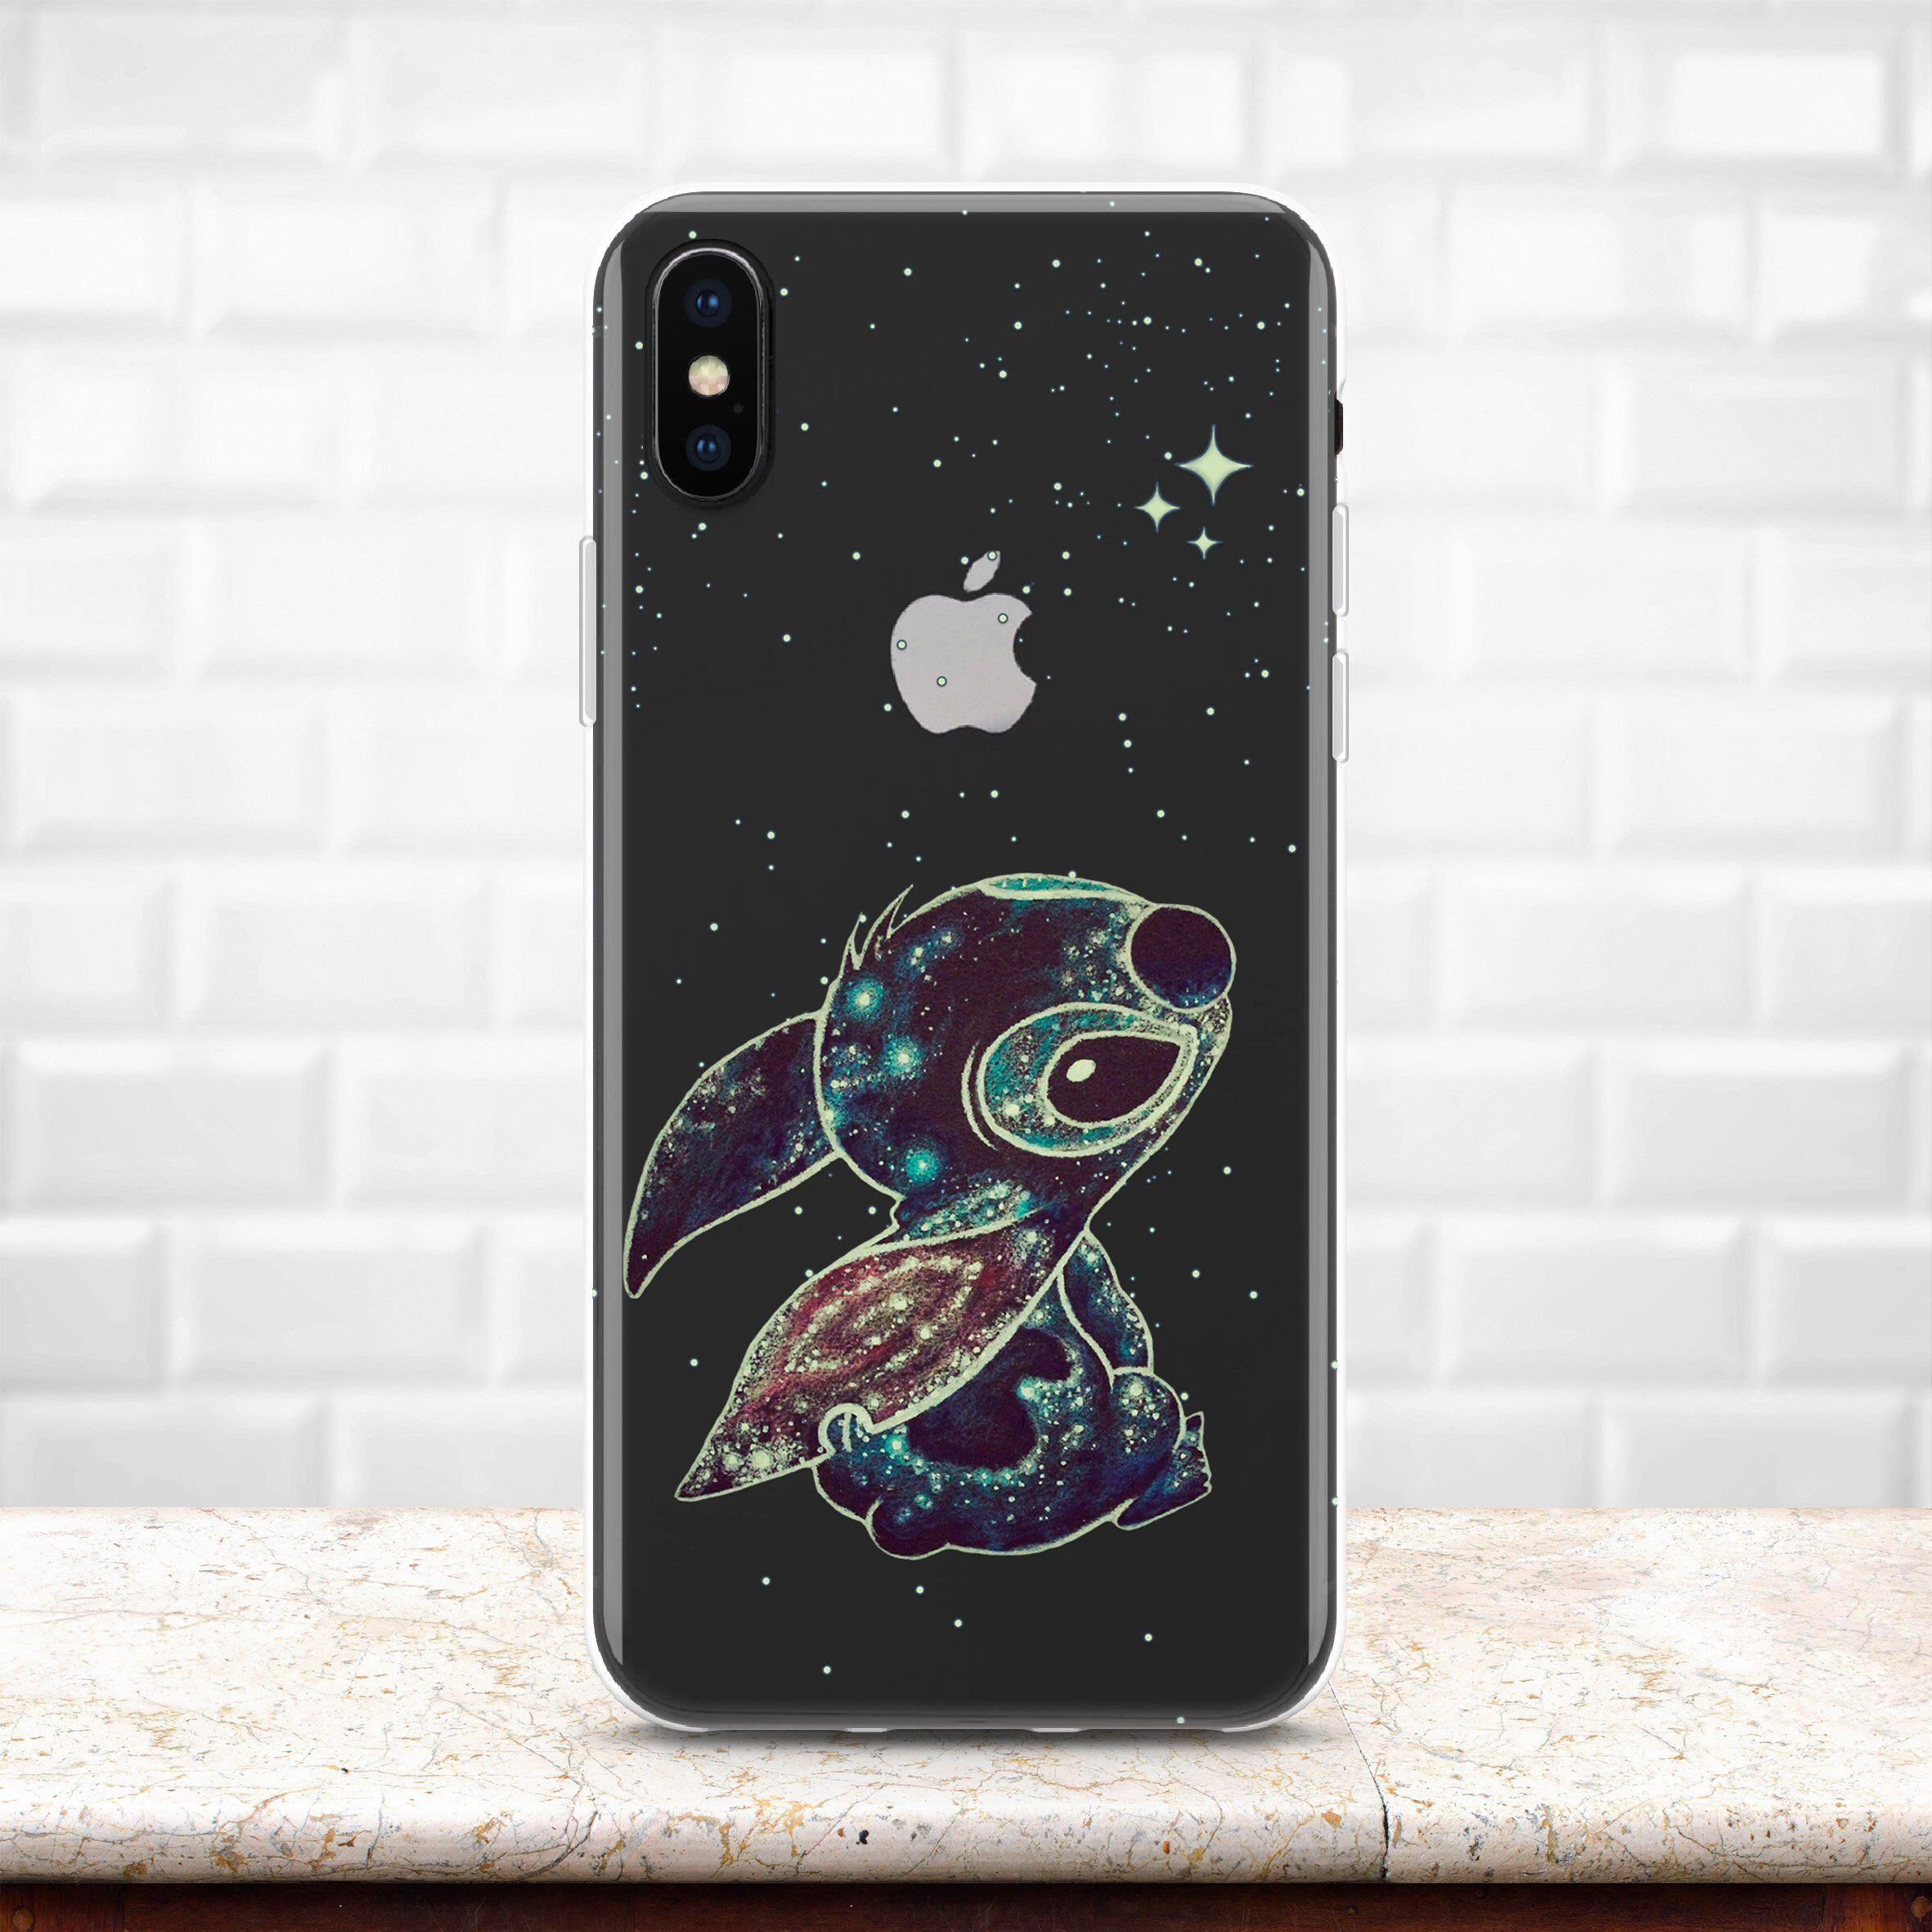 online store 212c5 21041 Pin by Susana Bravo on Christmas in 2019 | Iphone phone cases ...